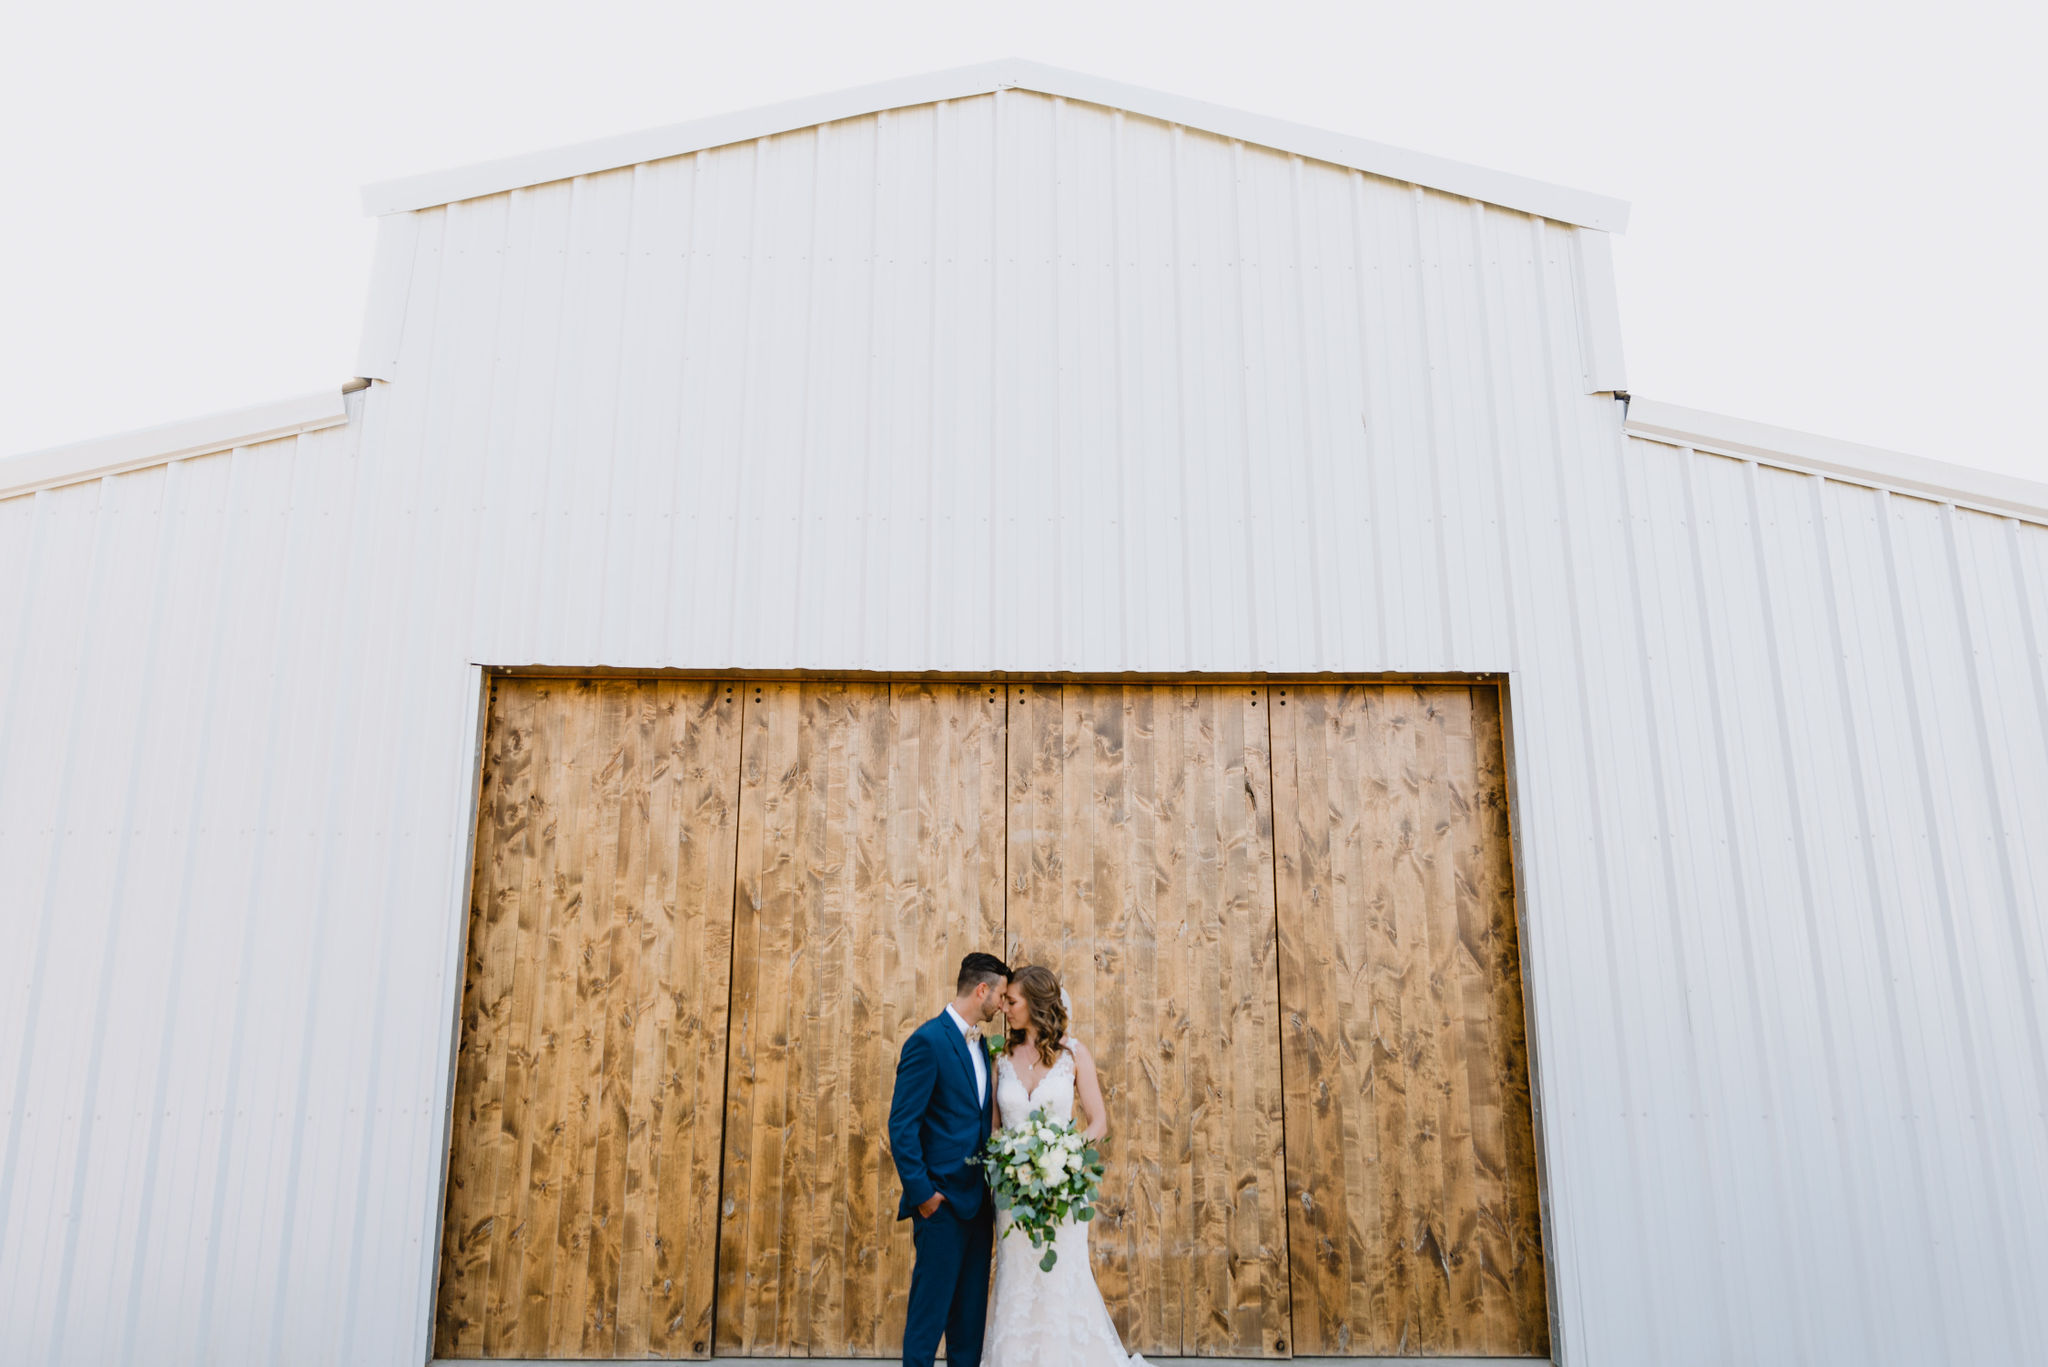 Stefanie + Jason | Hemet, California | Owl Creek Farms